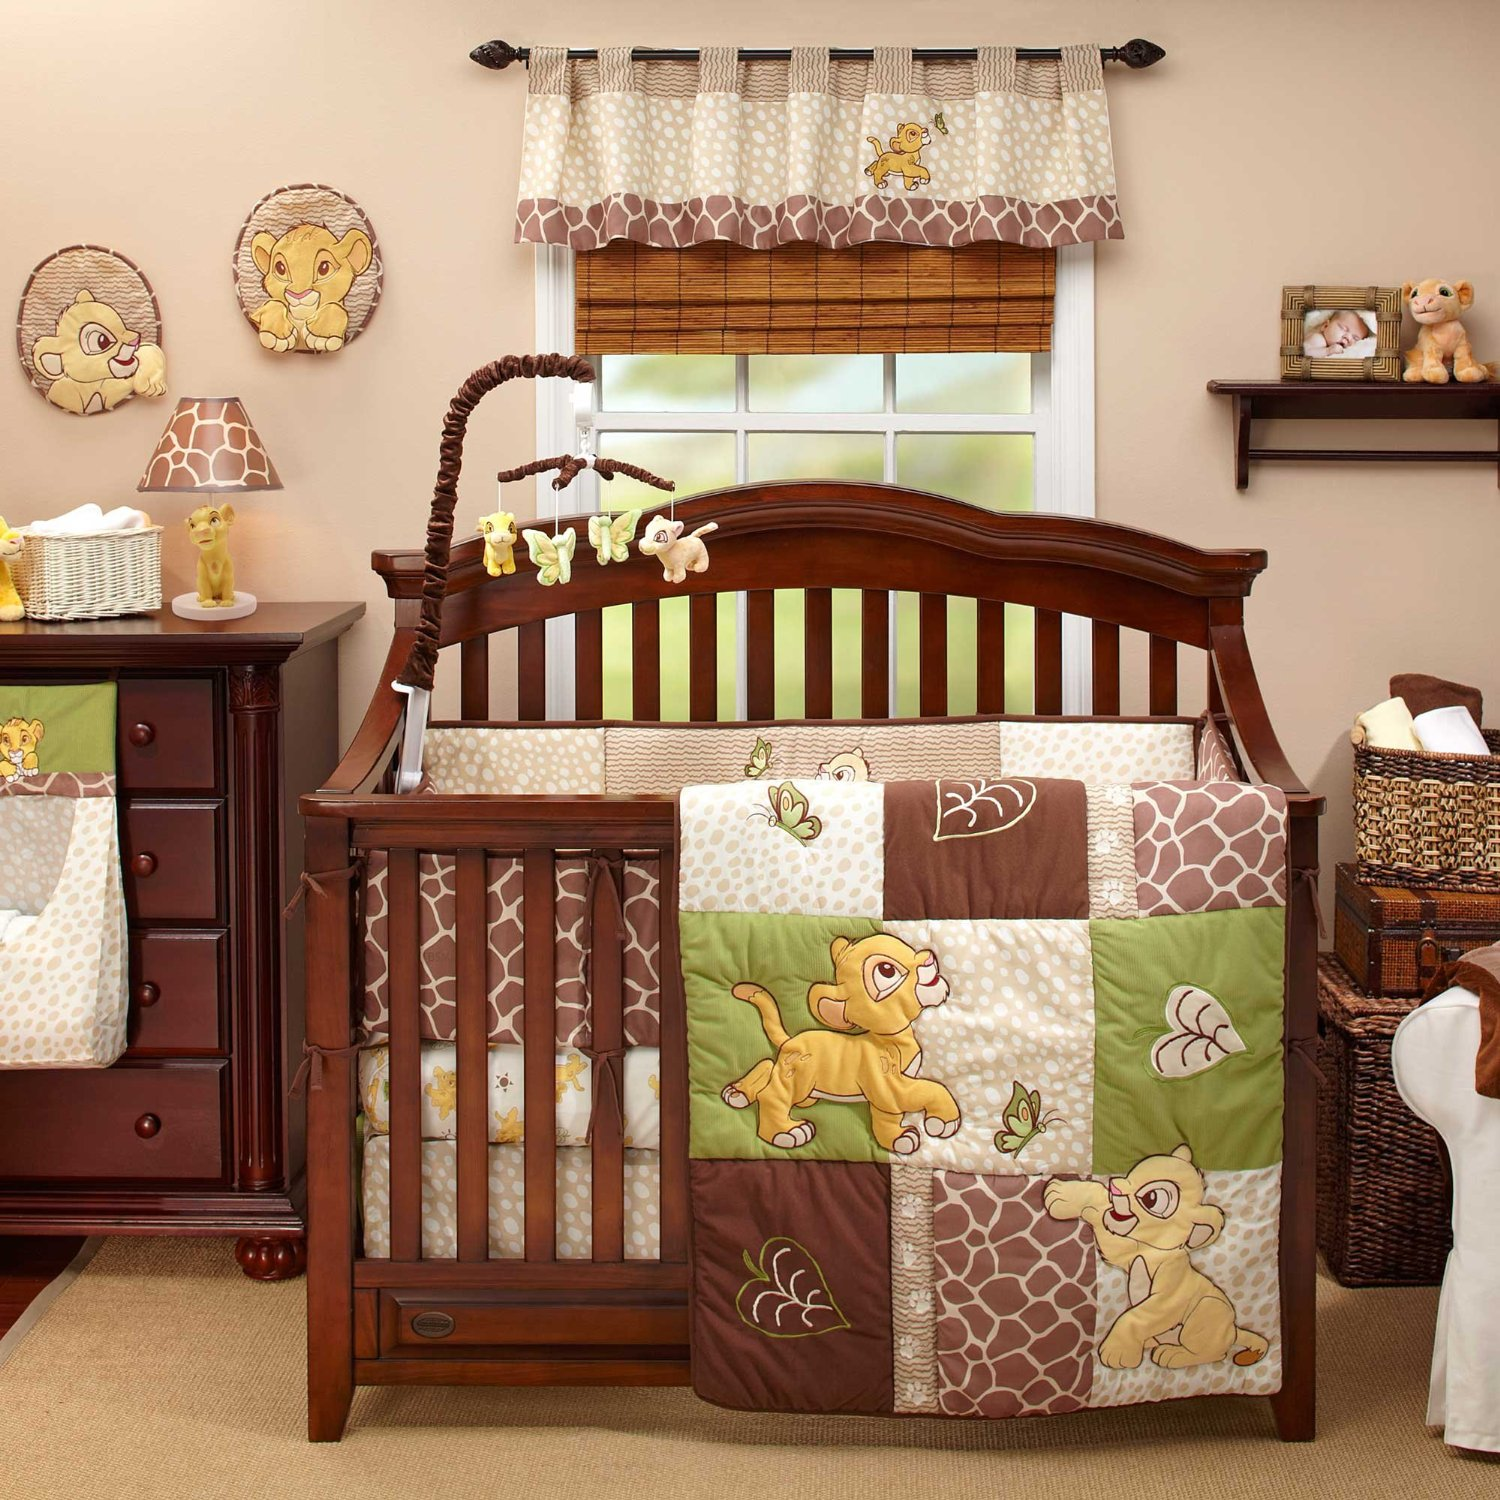 Lion King Go Wild Baby Bedding And Decor Baby Bedding